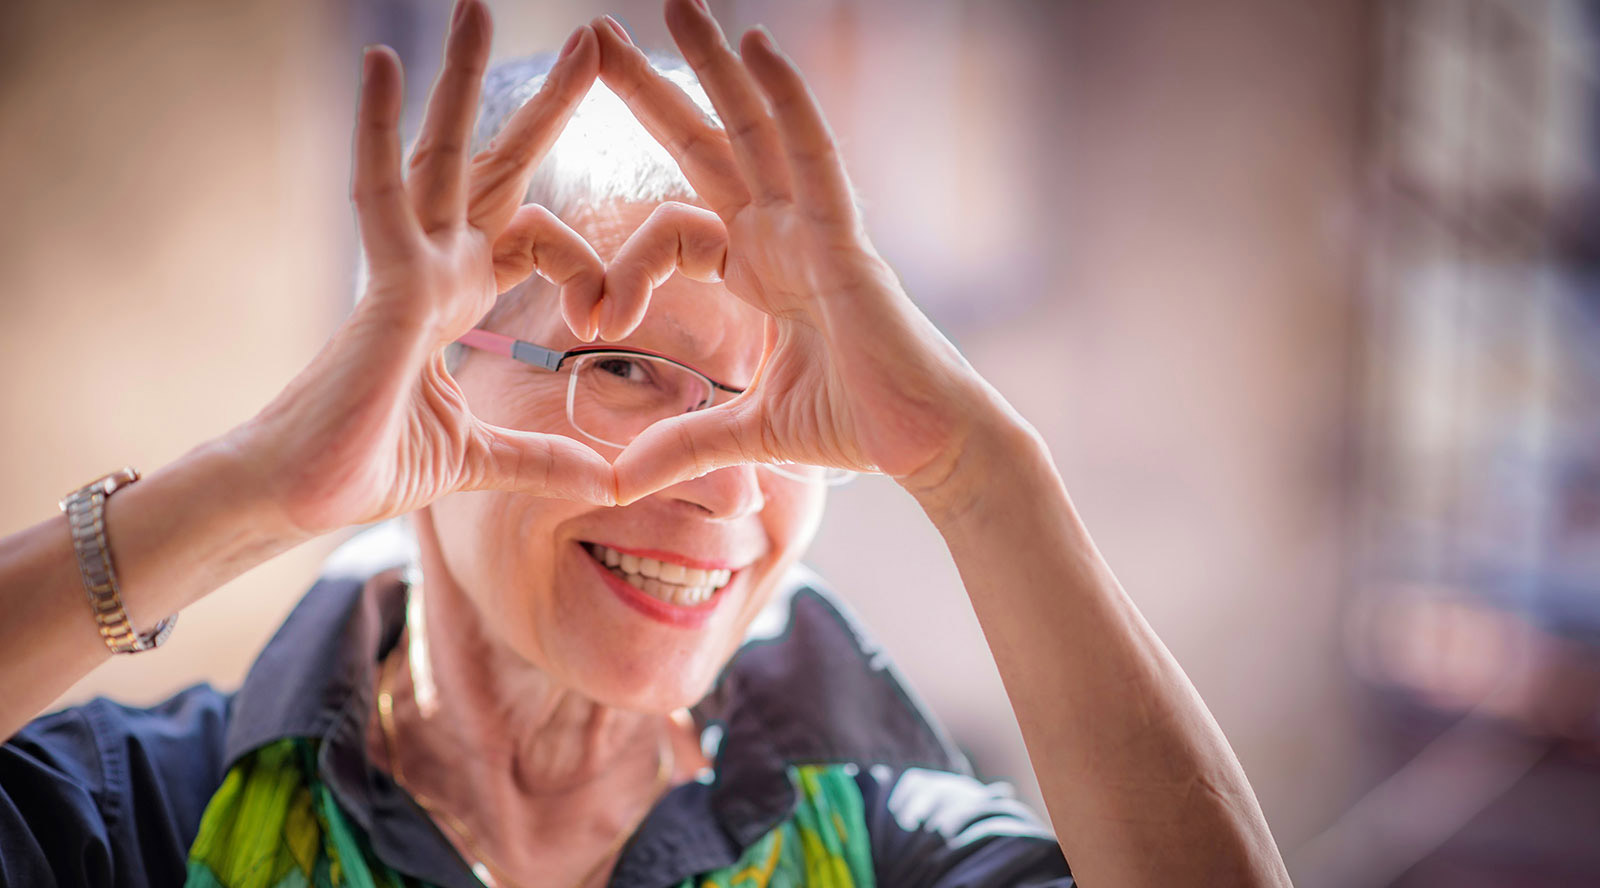 A women making a heart symbol with her hands.